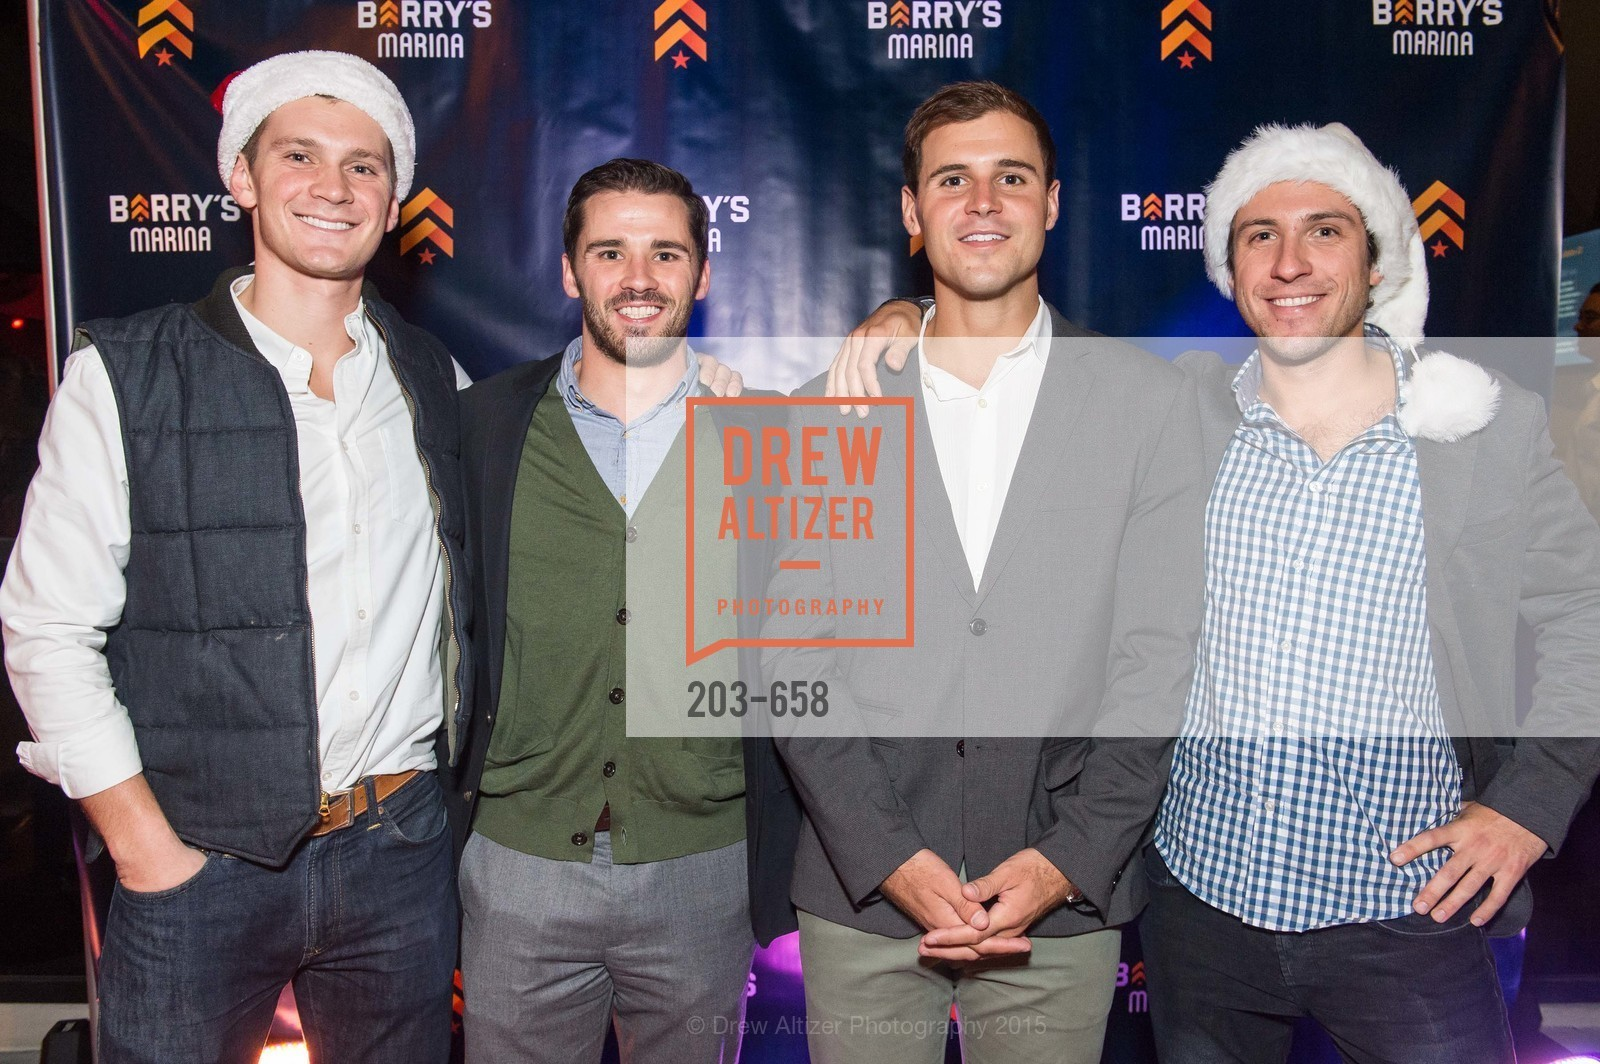 Michael Thomas, Andrew Timeier, Corey Warzola, Scott Baseck, Barry's Marina Opening, Barry's. 2246 Lombard Street, December 17th, 2015,Drew Altizer, Drew Altizer Photography, full-service agency, private events, San Francisco photographer, photographer california